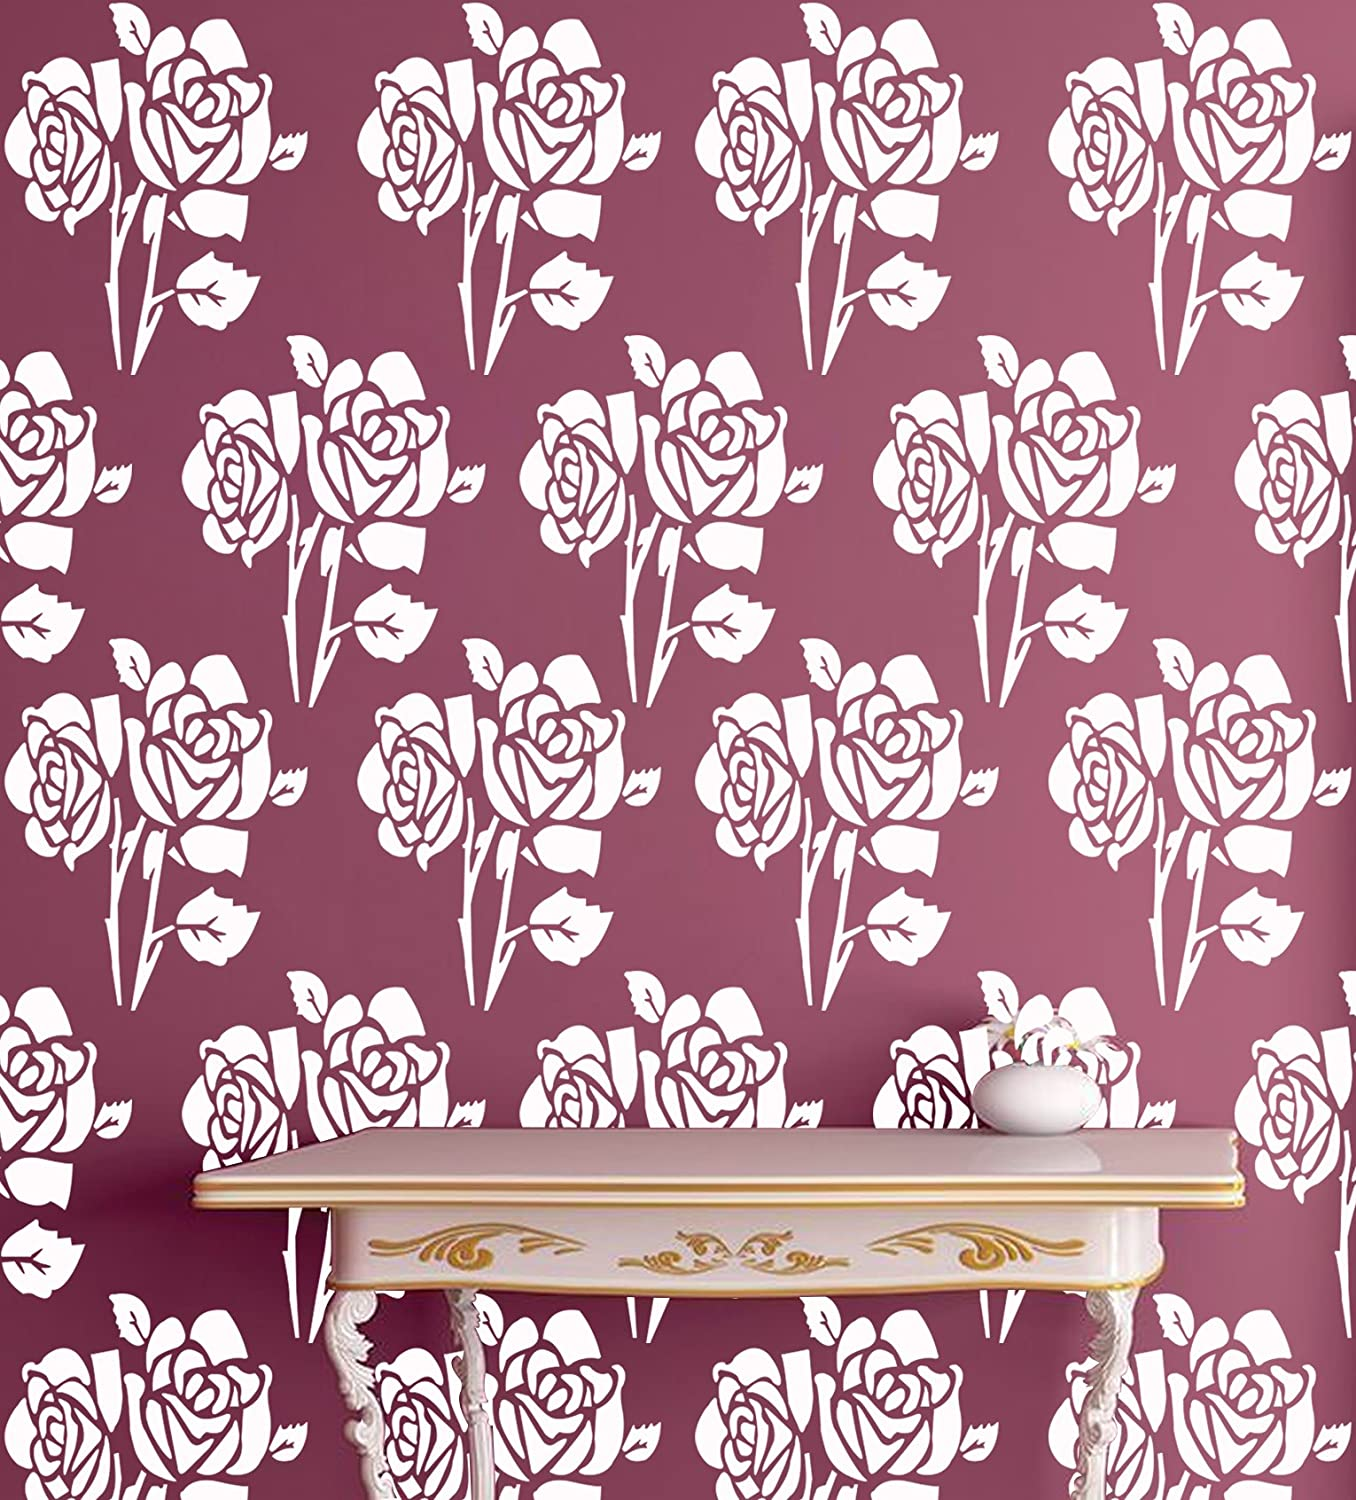 Kayra Decor Royal Roses Reusable Wall Stencil For Wall Decordiy